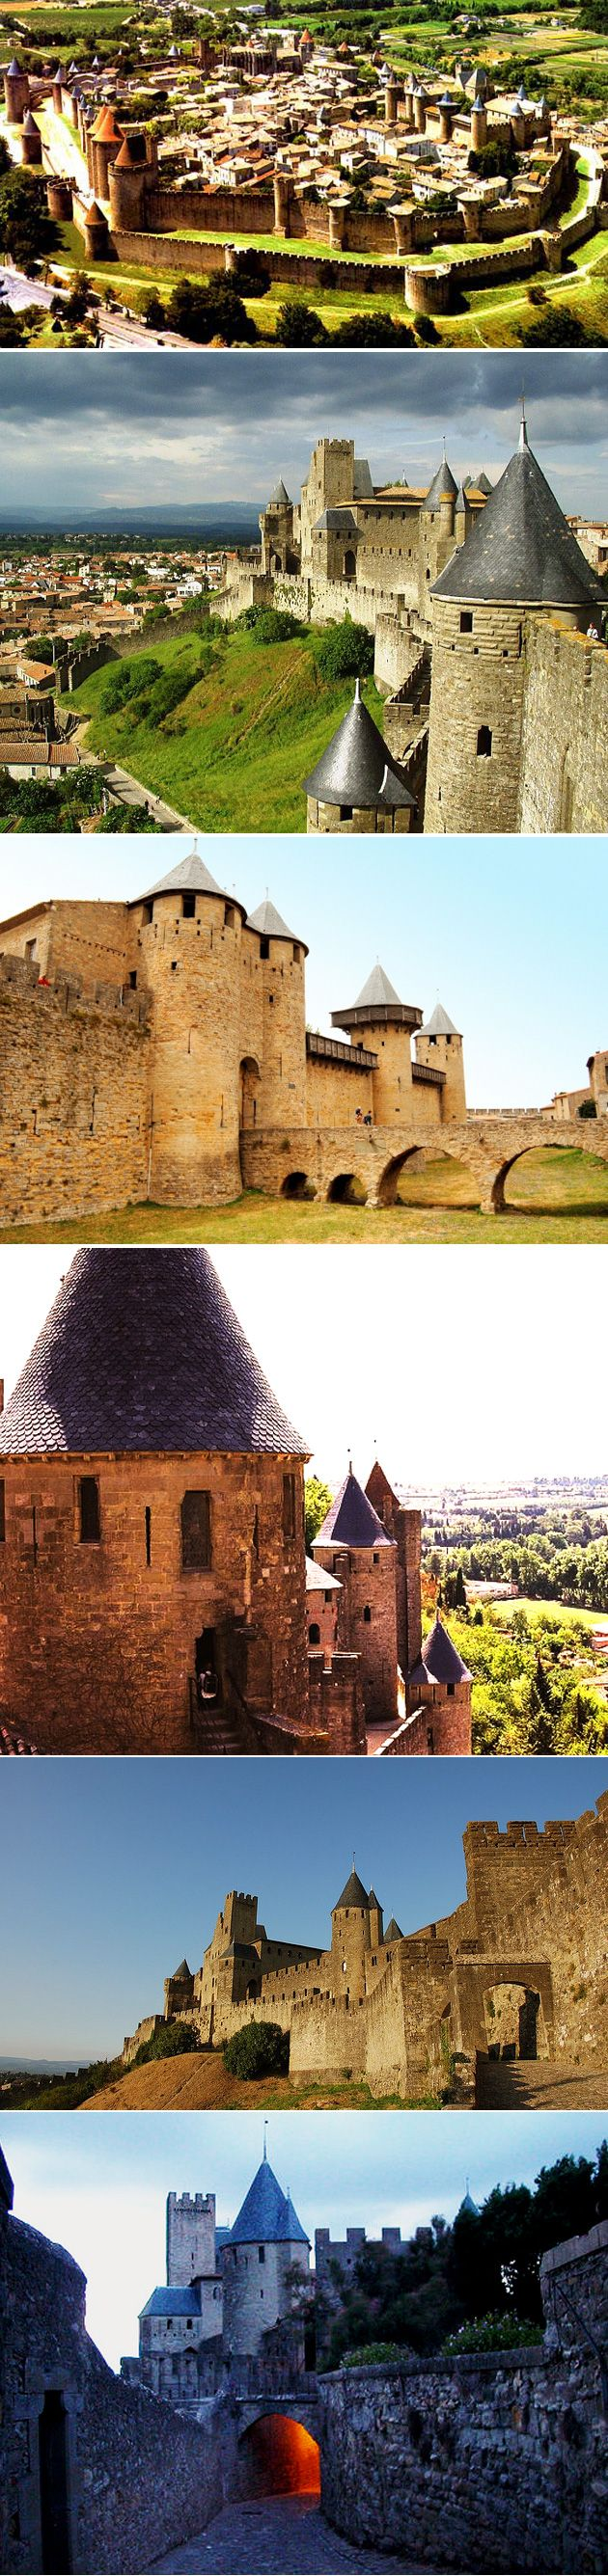 Carcassonne - Castles you must visit with your children because it will set their imagination flying